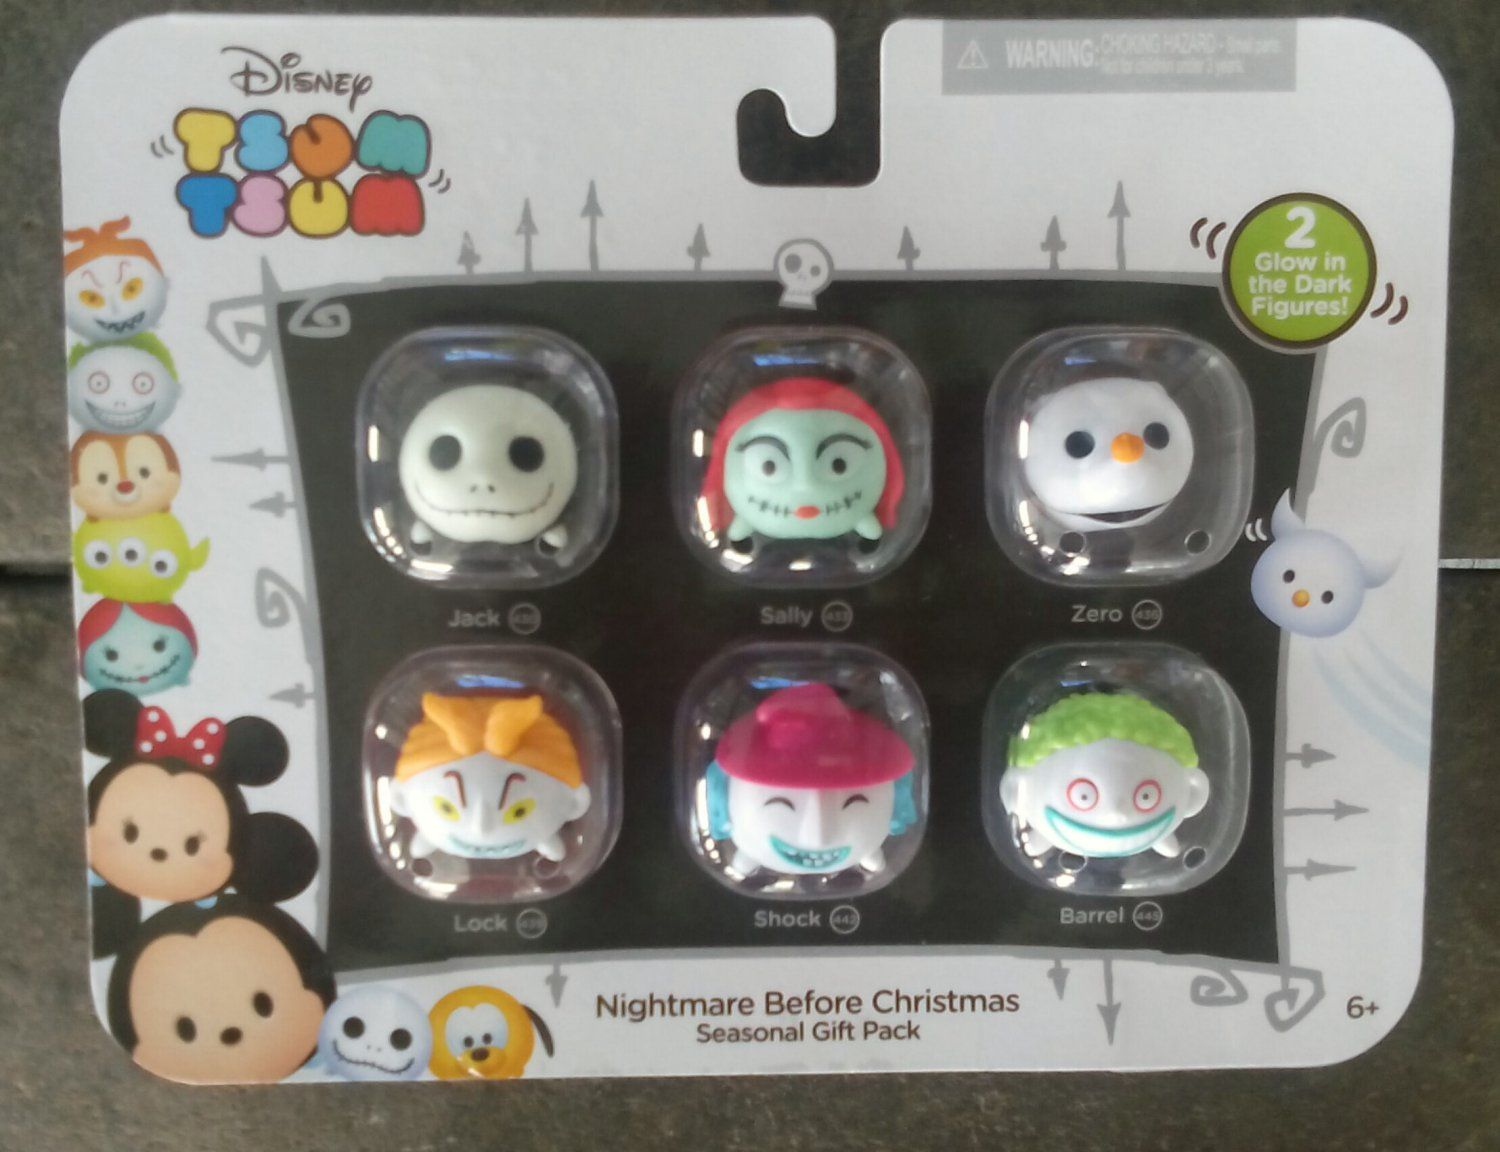 Jack skellington bathroom set - Disney Tsum Tsum Nightmare Before Christmas Seasonal Gift Pack 09122 Walgreen S Exclusive By